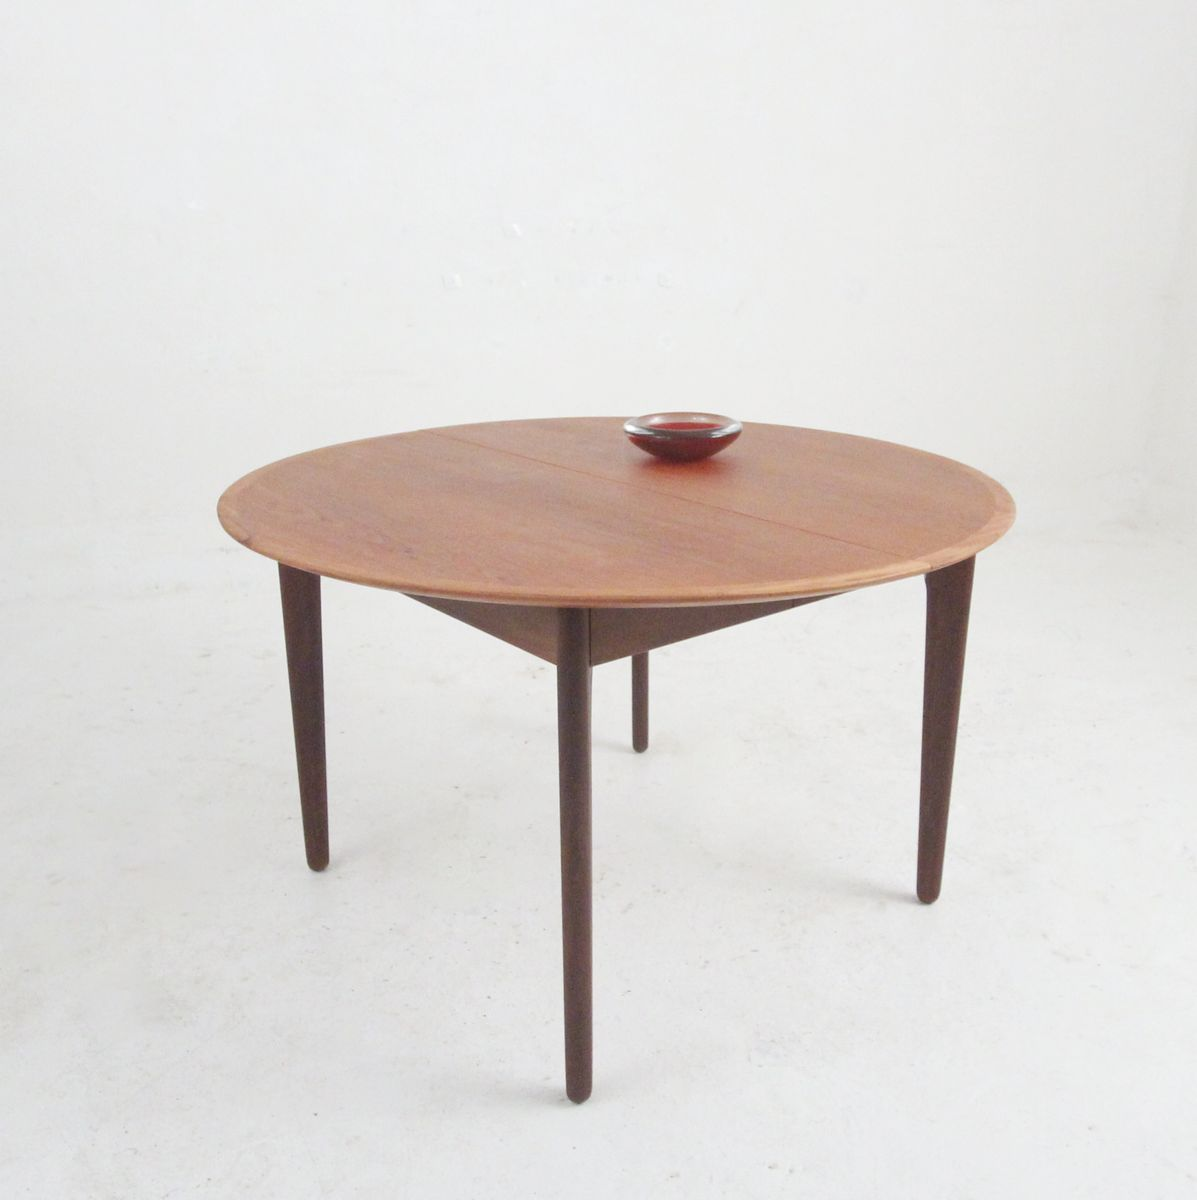 MidCentury Round Veneer Dining Table From Vamo For Sale At Pamono - Mid century round dining table with leaf